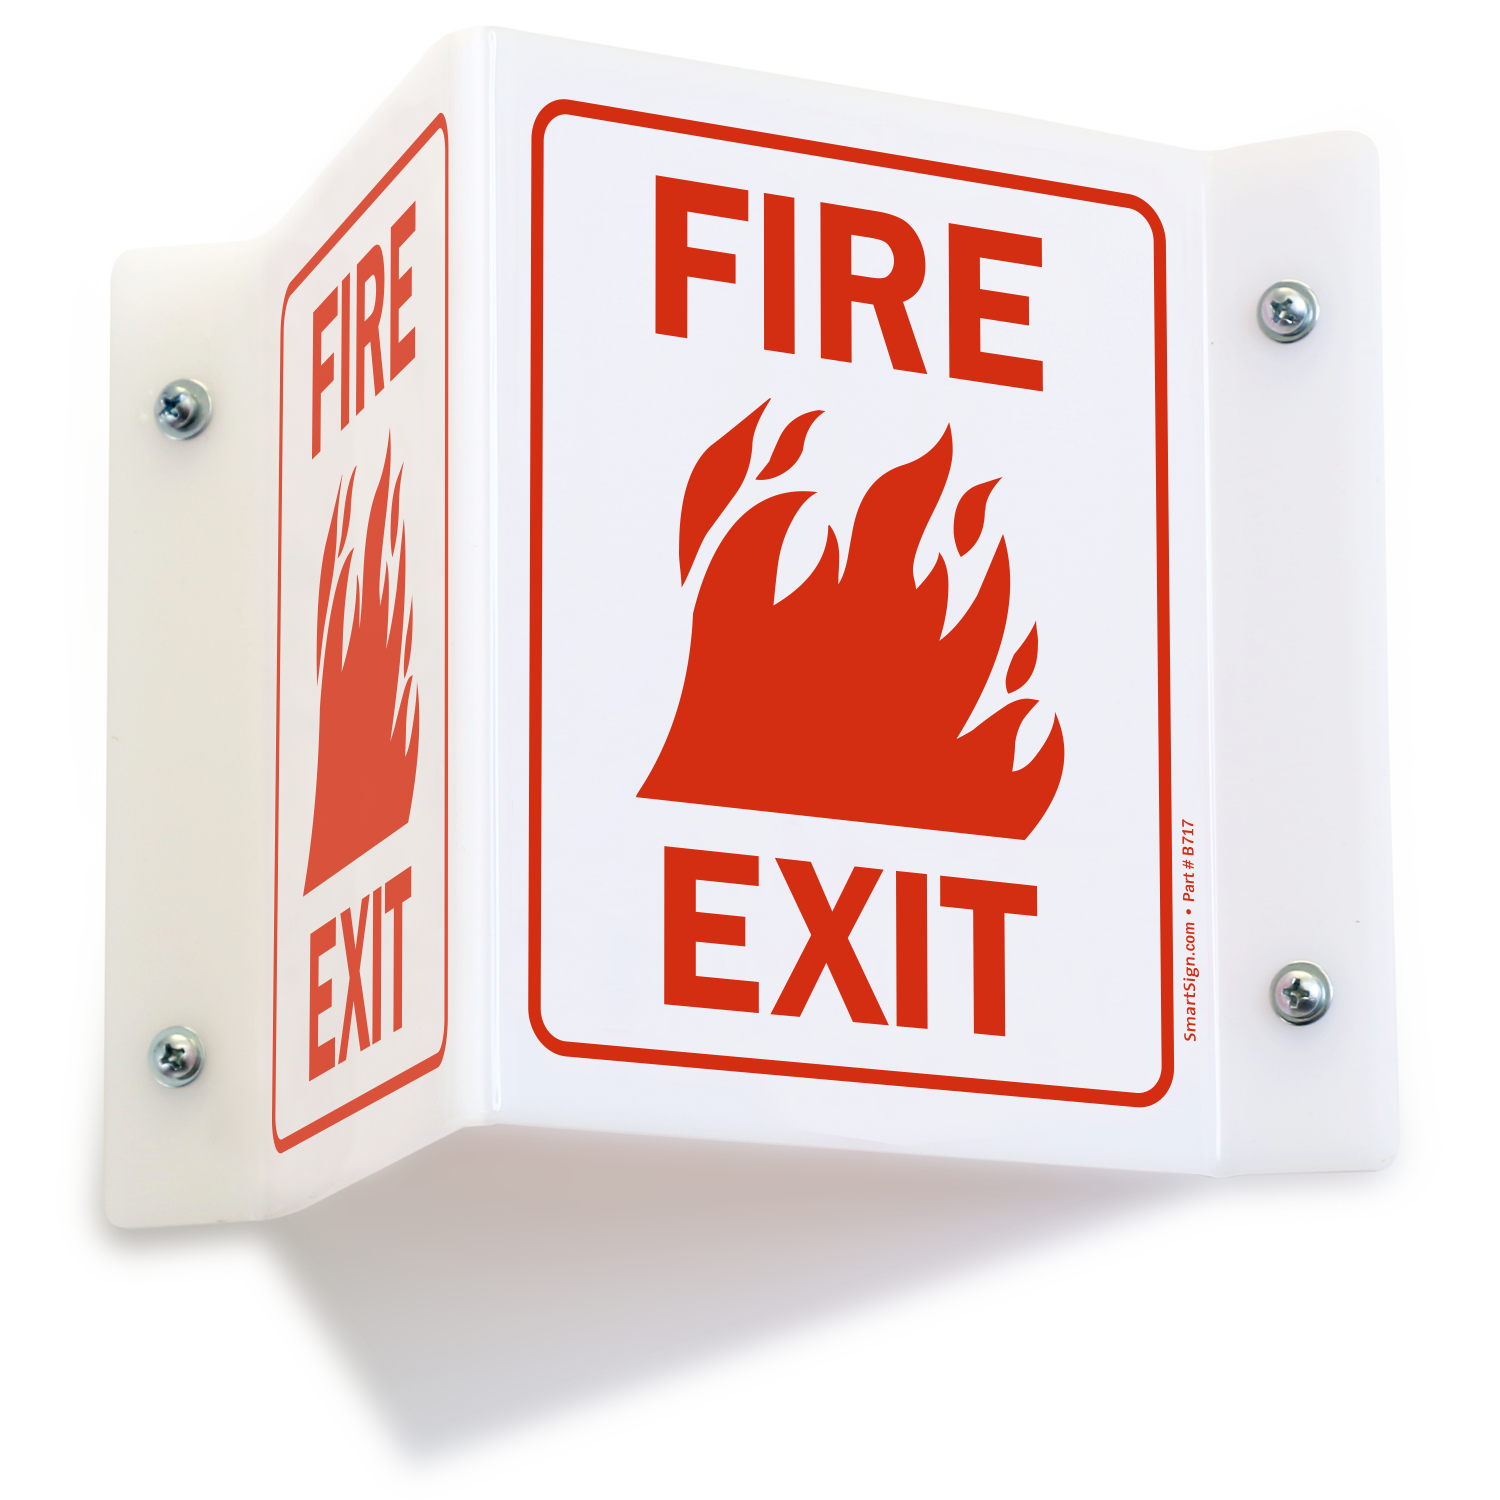 fire exit signs fire and emergency signs sku s 4569. Black Bedroom Furniture Sets. Home Design Ideas